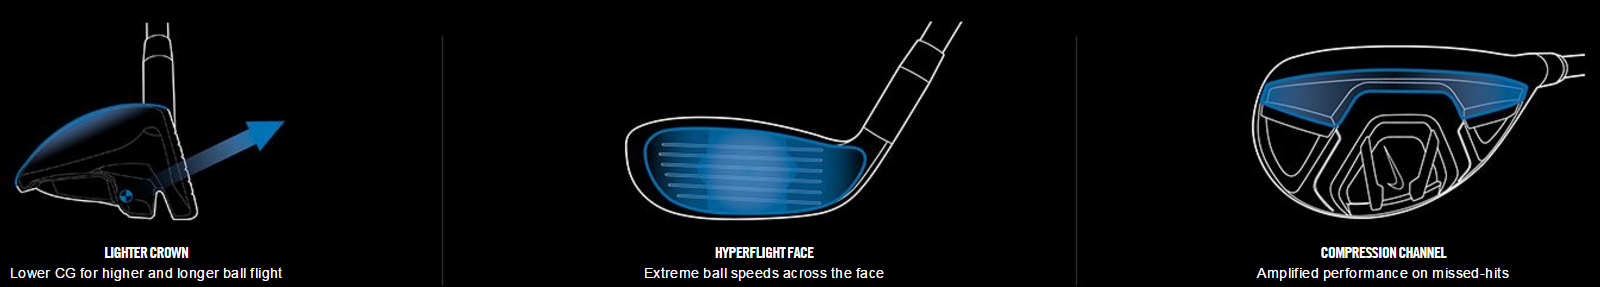 Nike Vapor Fly Hybrid Tech